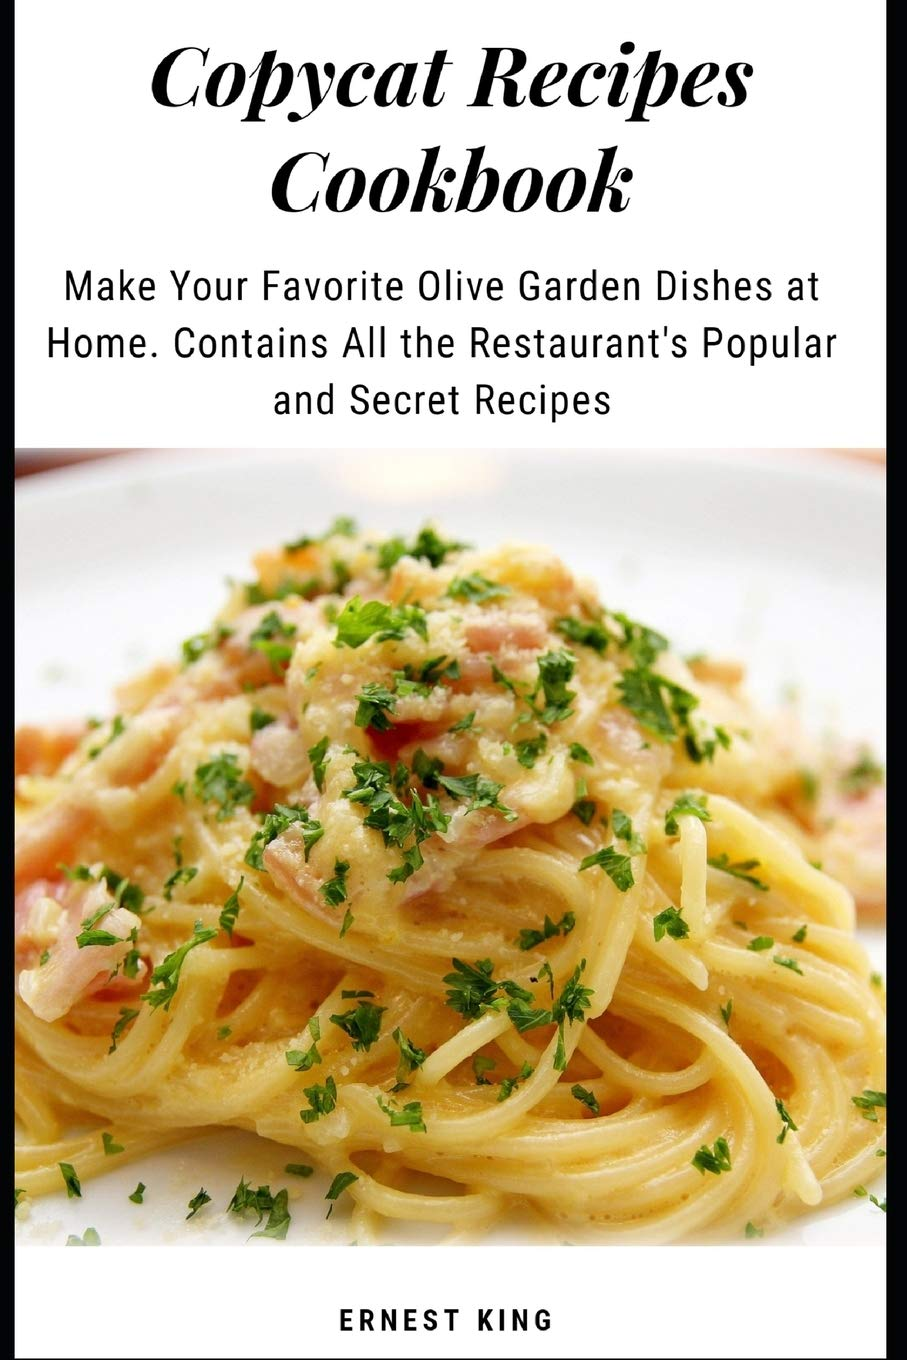 Buy Copycat Recipes Cookbook Make Your Favorite Olive Garden Dishes At Home Contains All The Restaurant S Popular And Secret Recipes 1 Popular Restaurant Copycat Cookbook Book Online At Low Prices In India